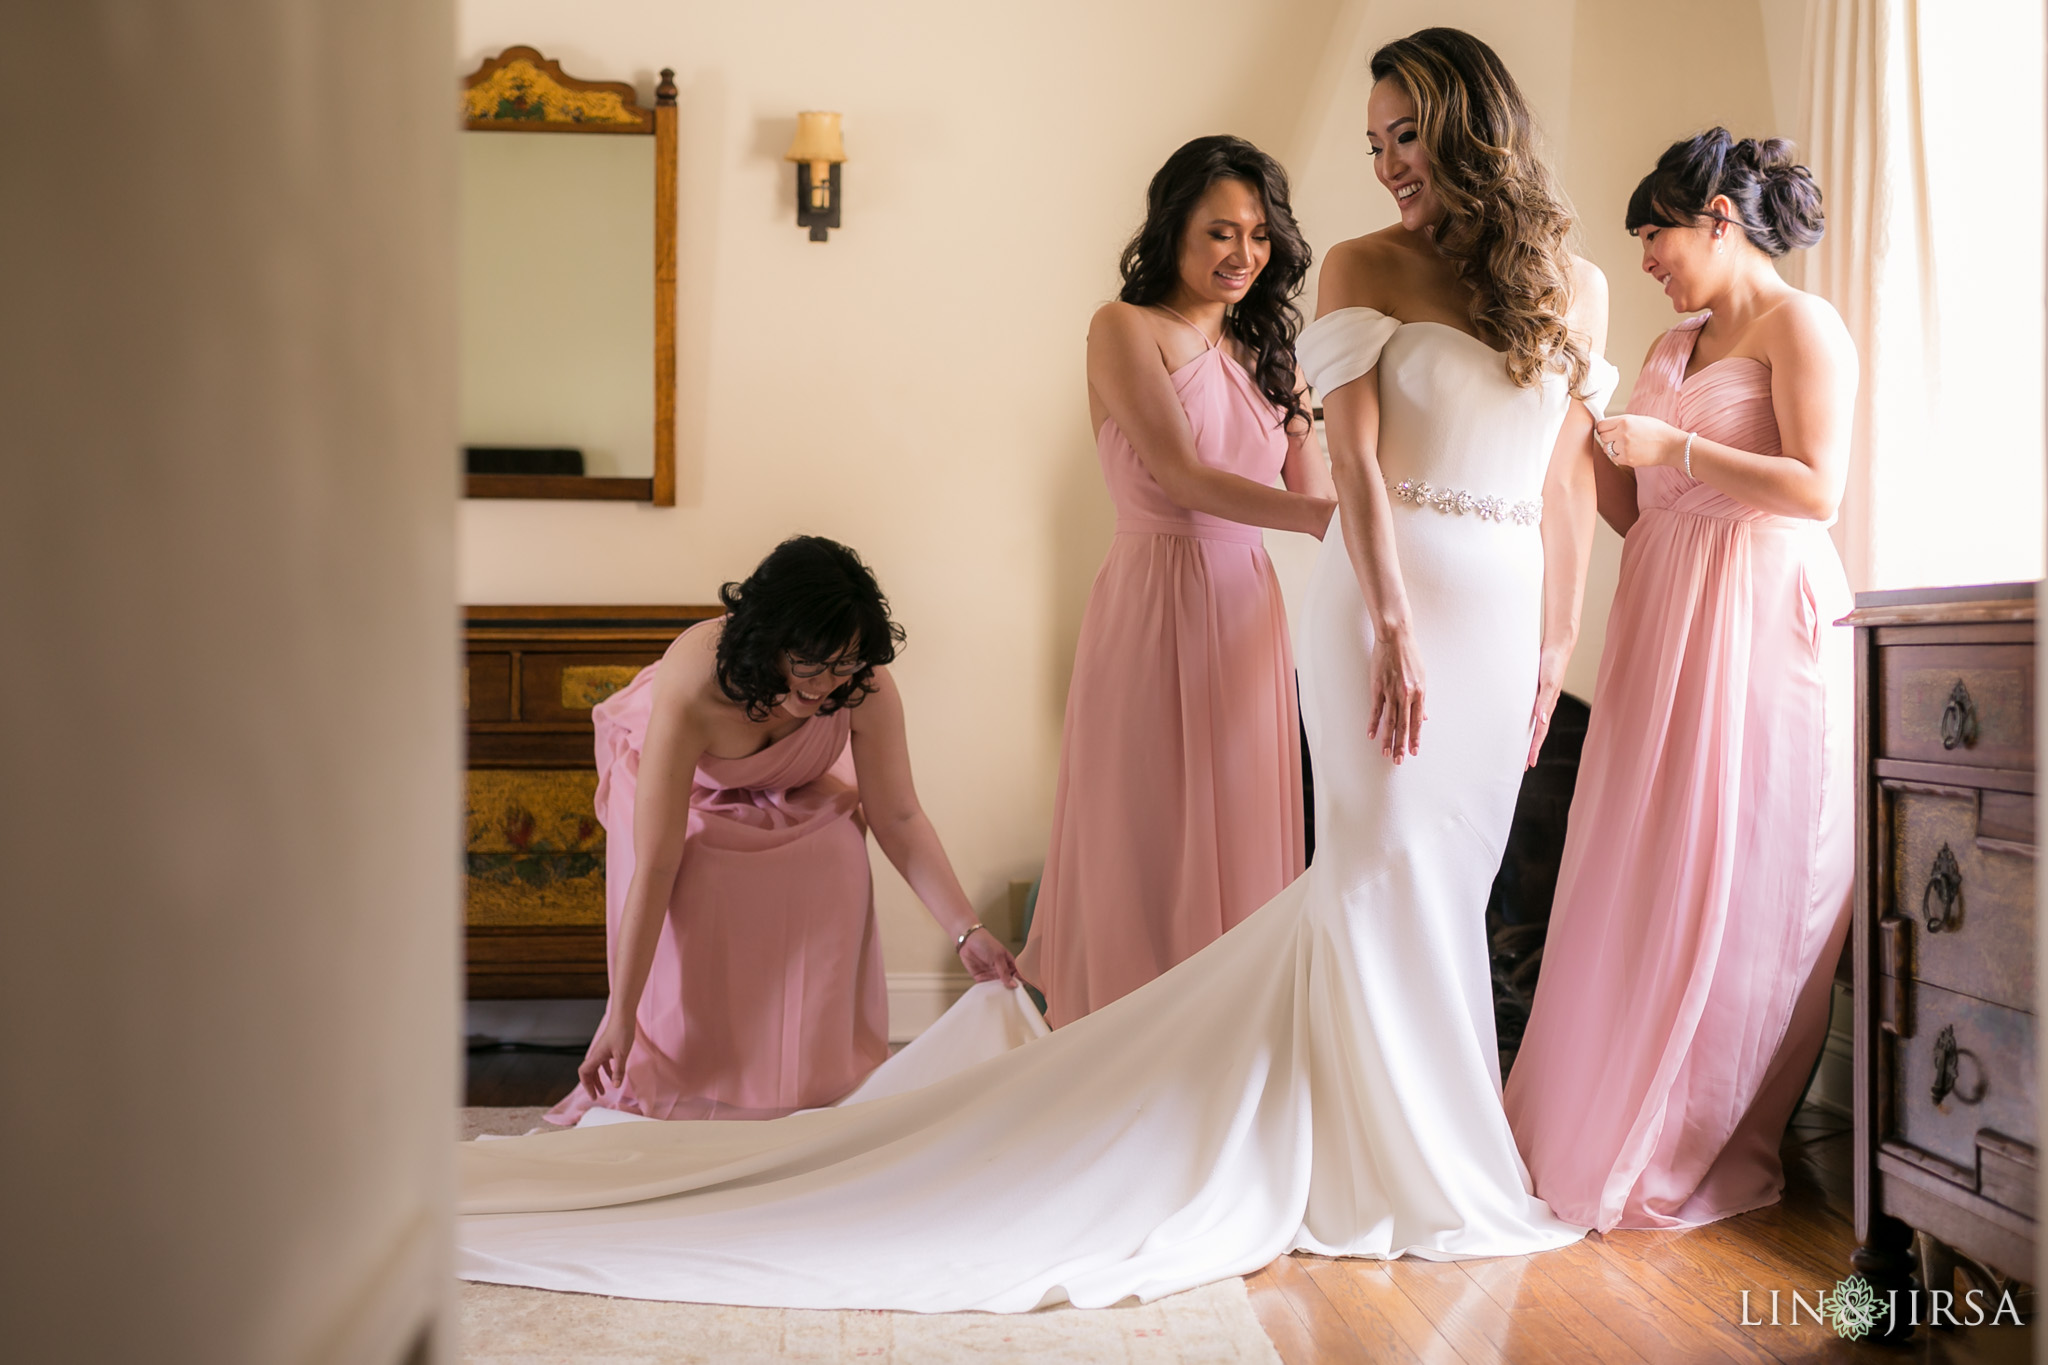 03 odonnell house palm springs bride wedding photography